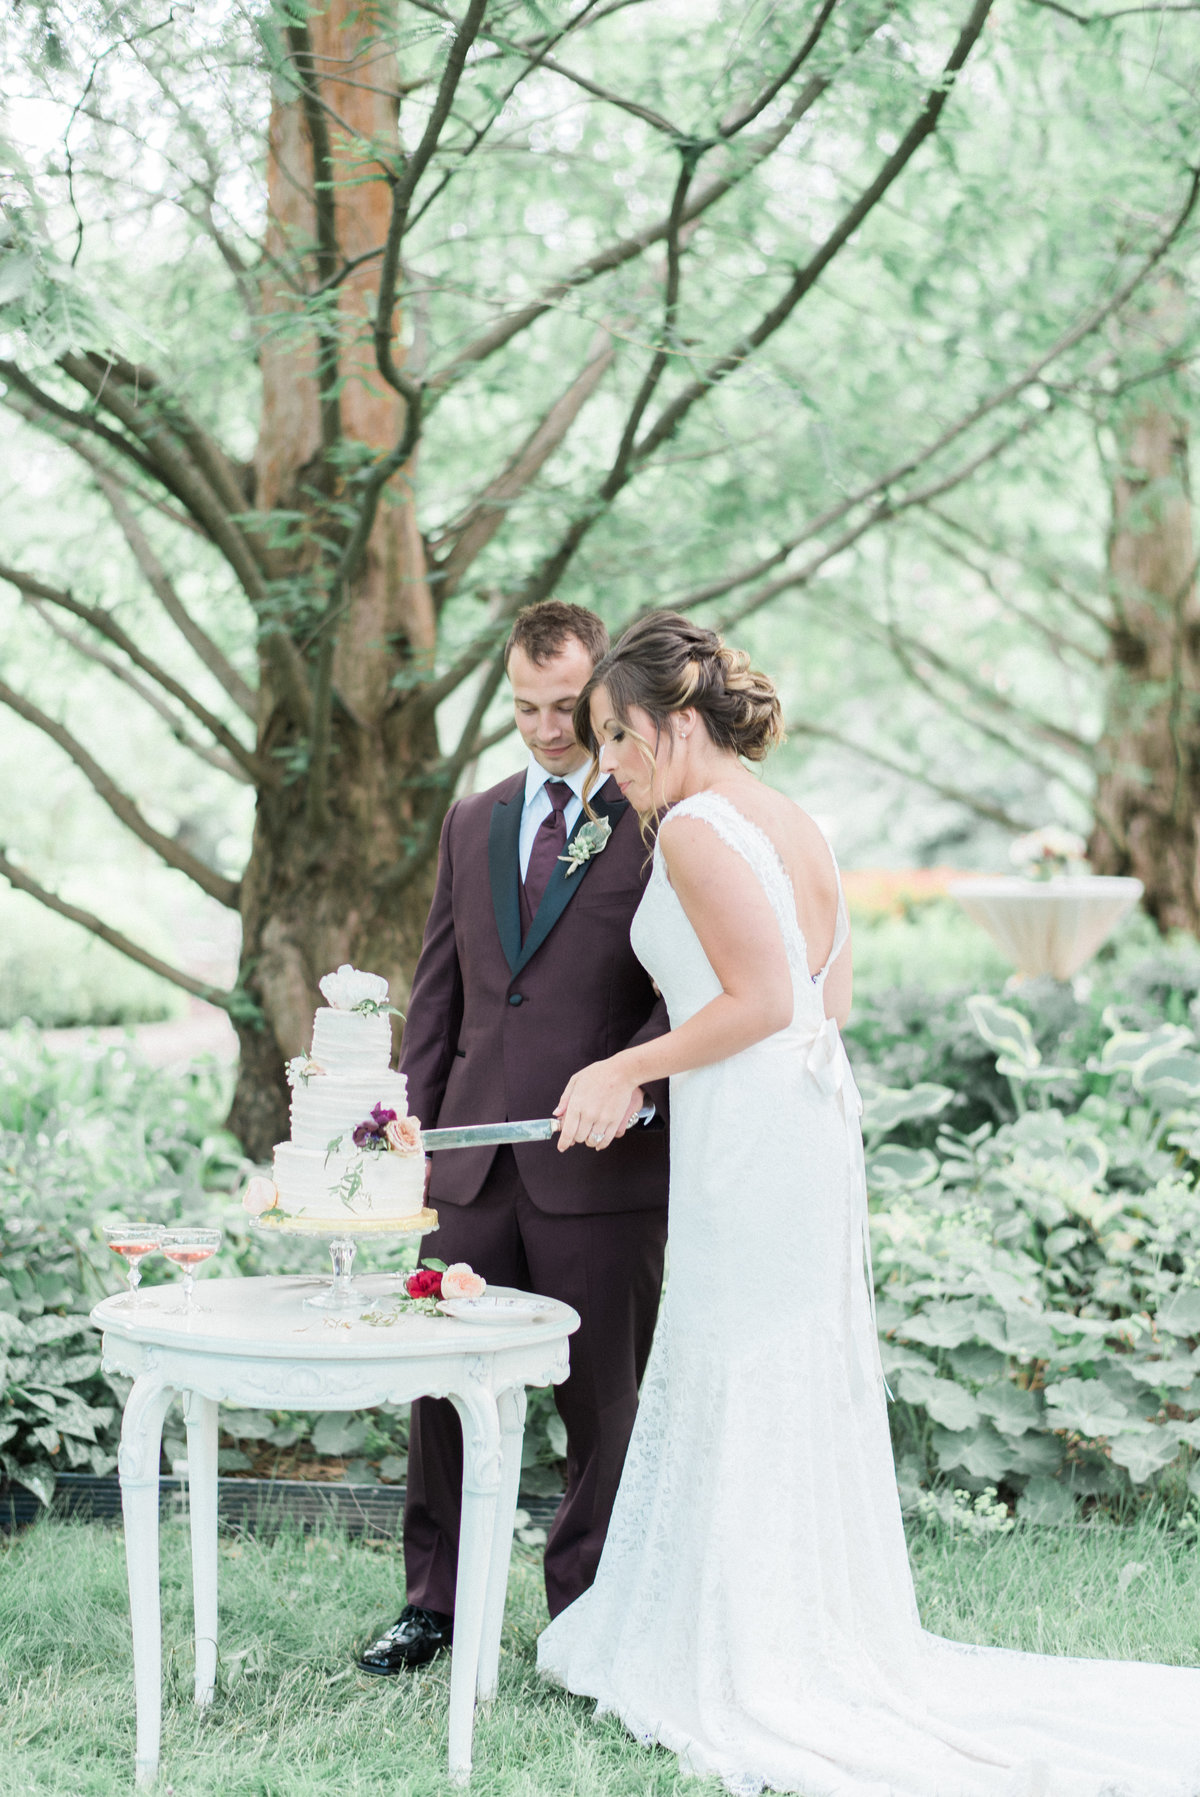 Ashley Link Photography-74